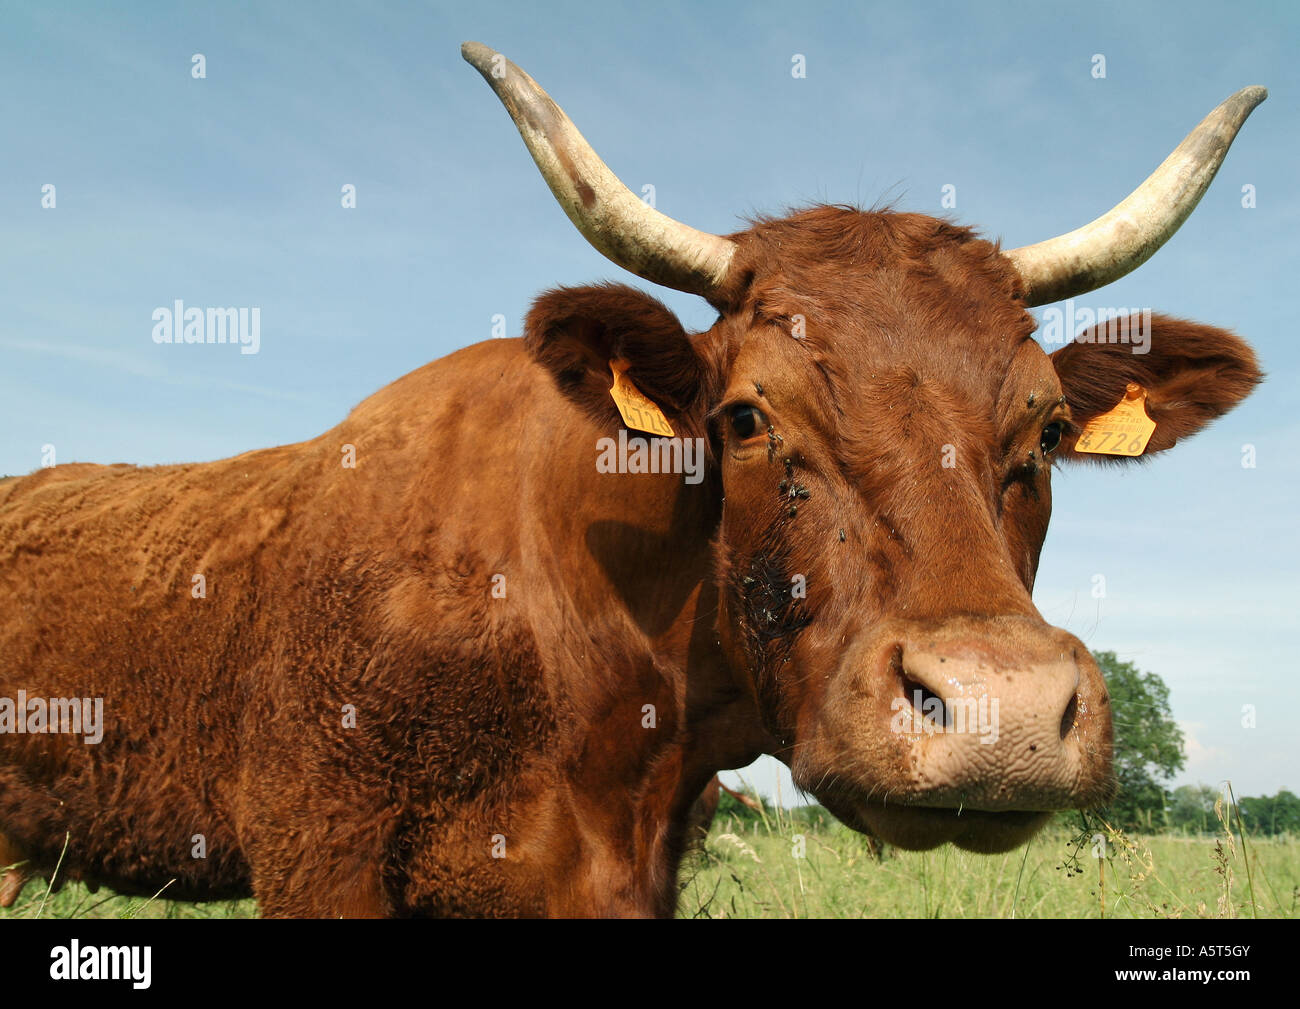 Cow, looking at camera - Stock Image